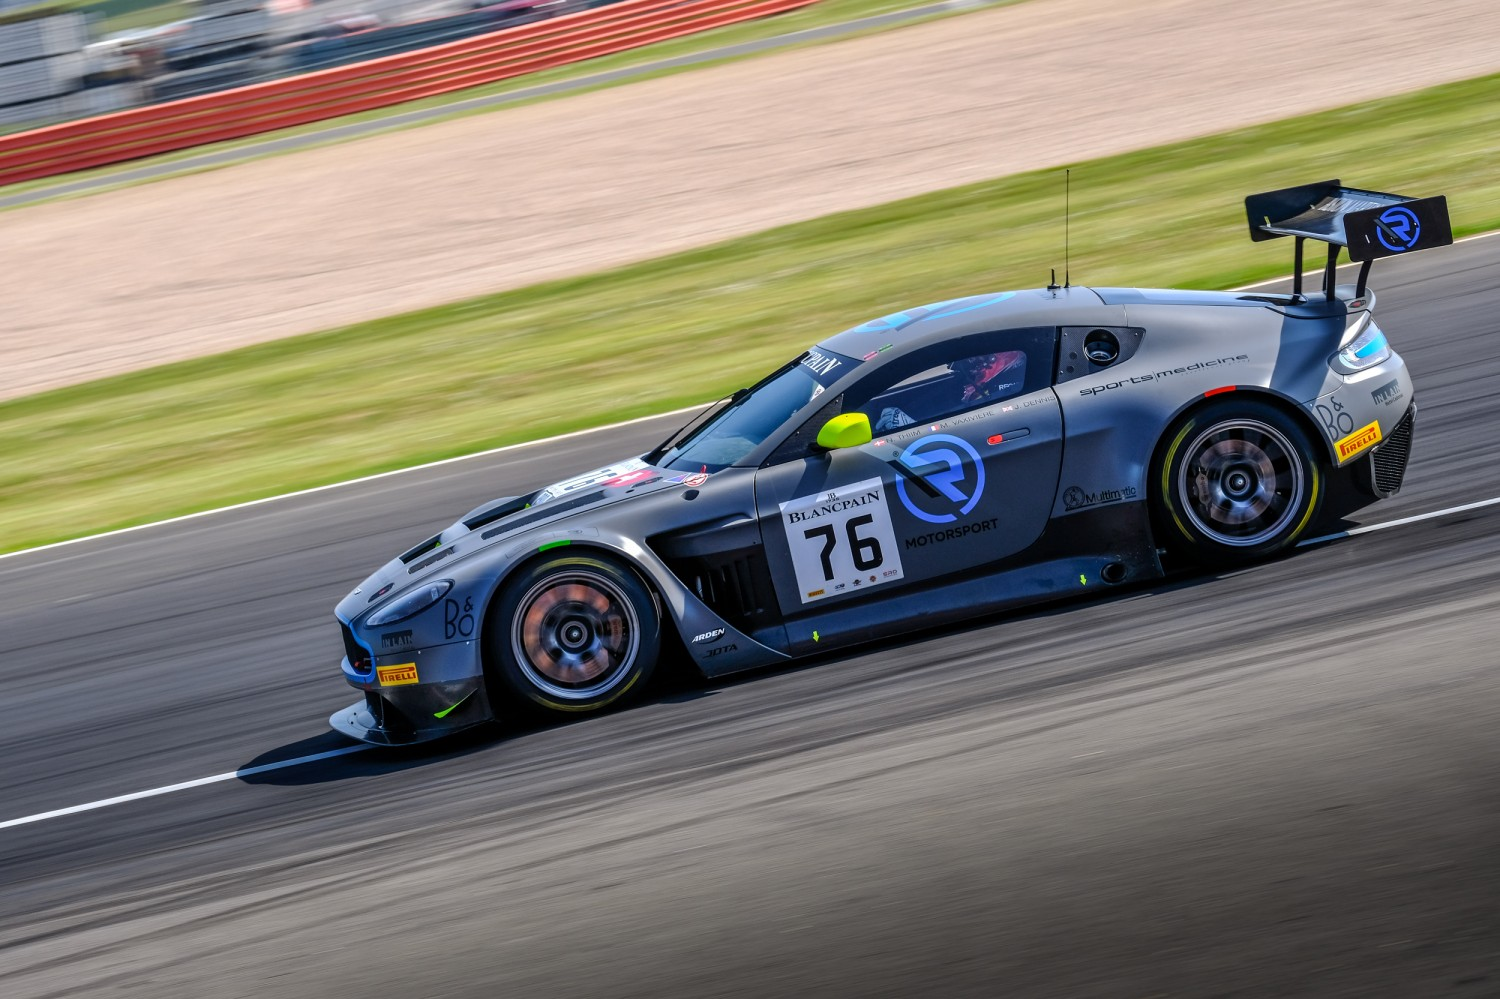 R-Motorsport and Aston Martin complete dominant Endurance Cup victory at Silverstone